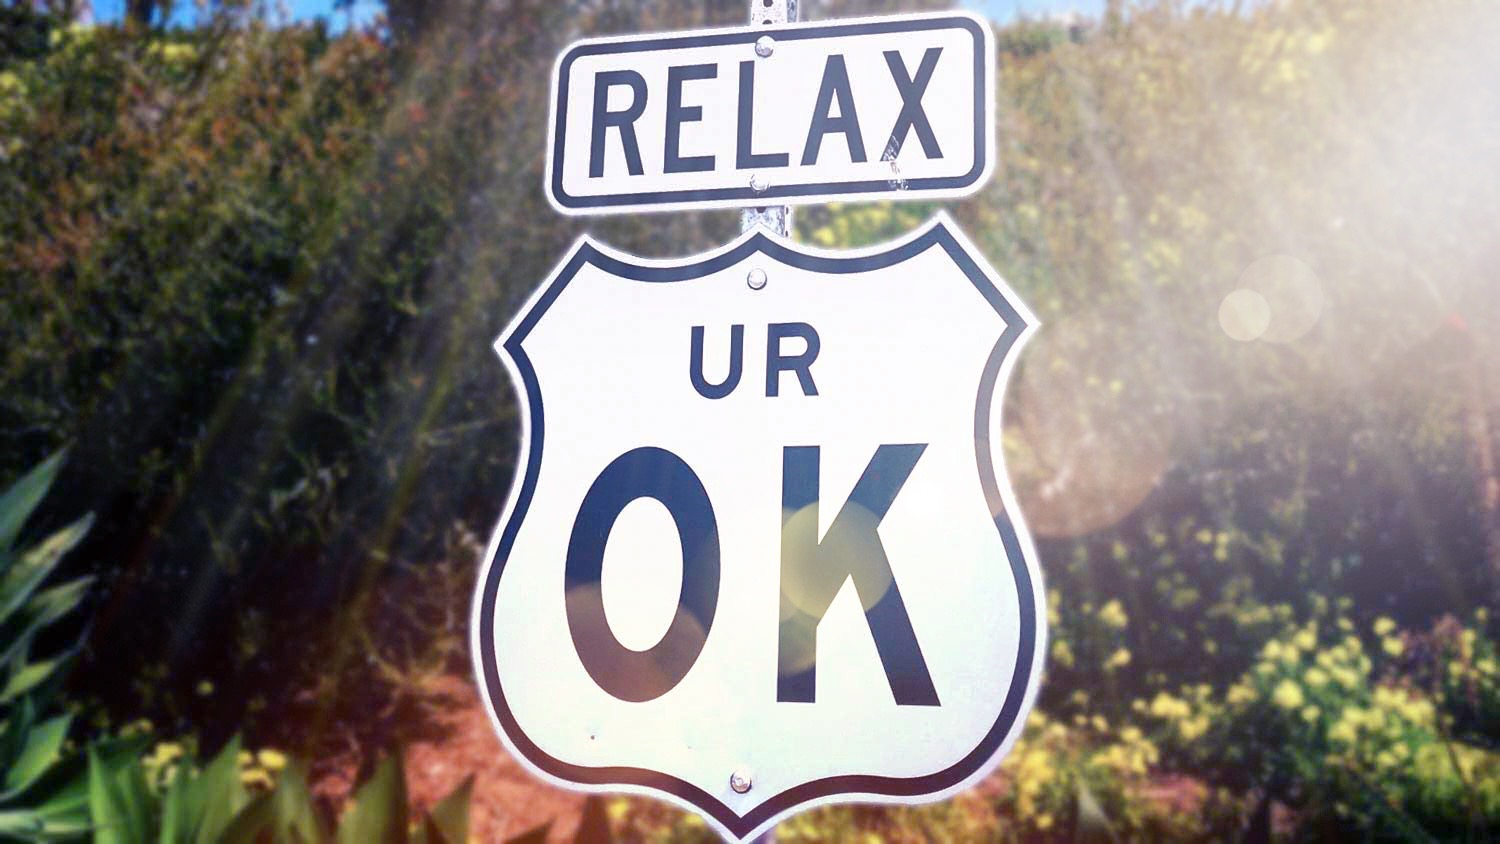 Sign saying Relax UR OK